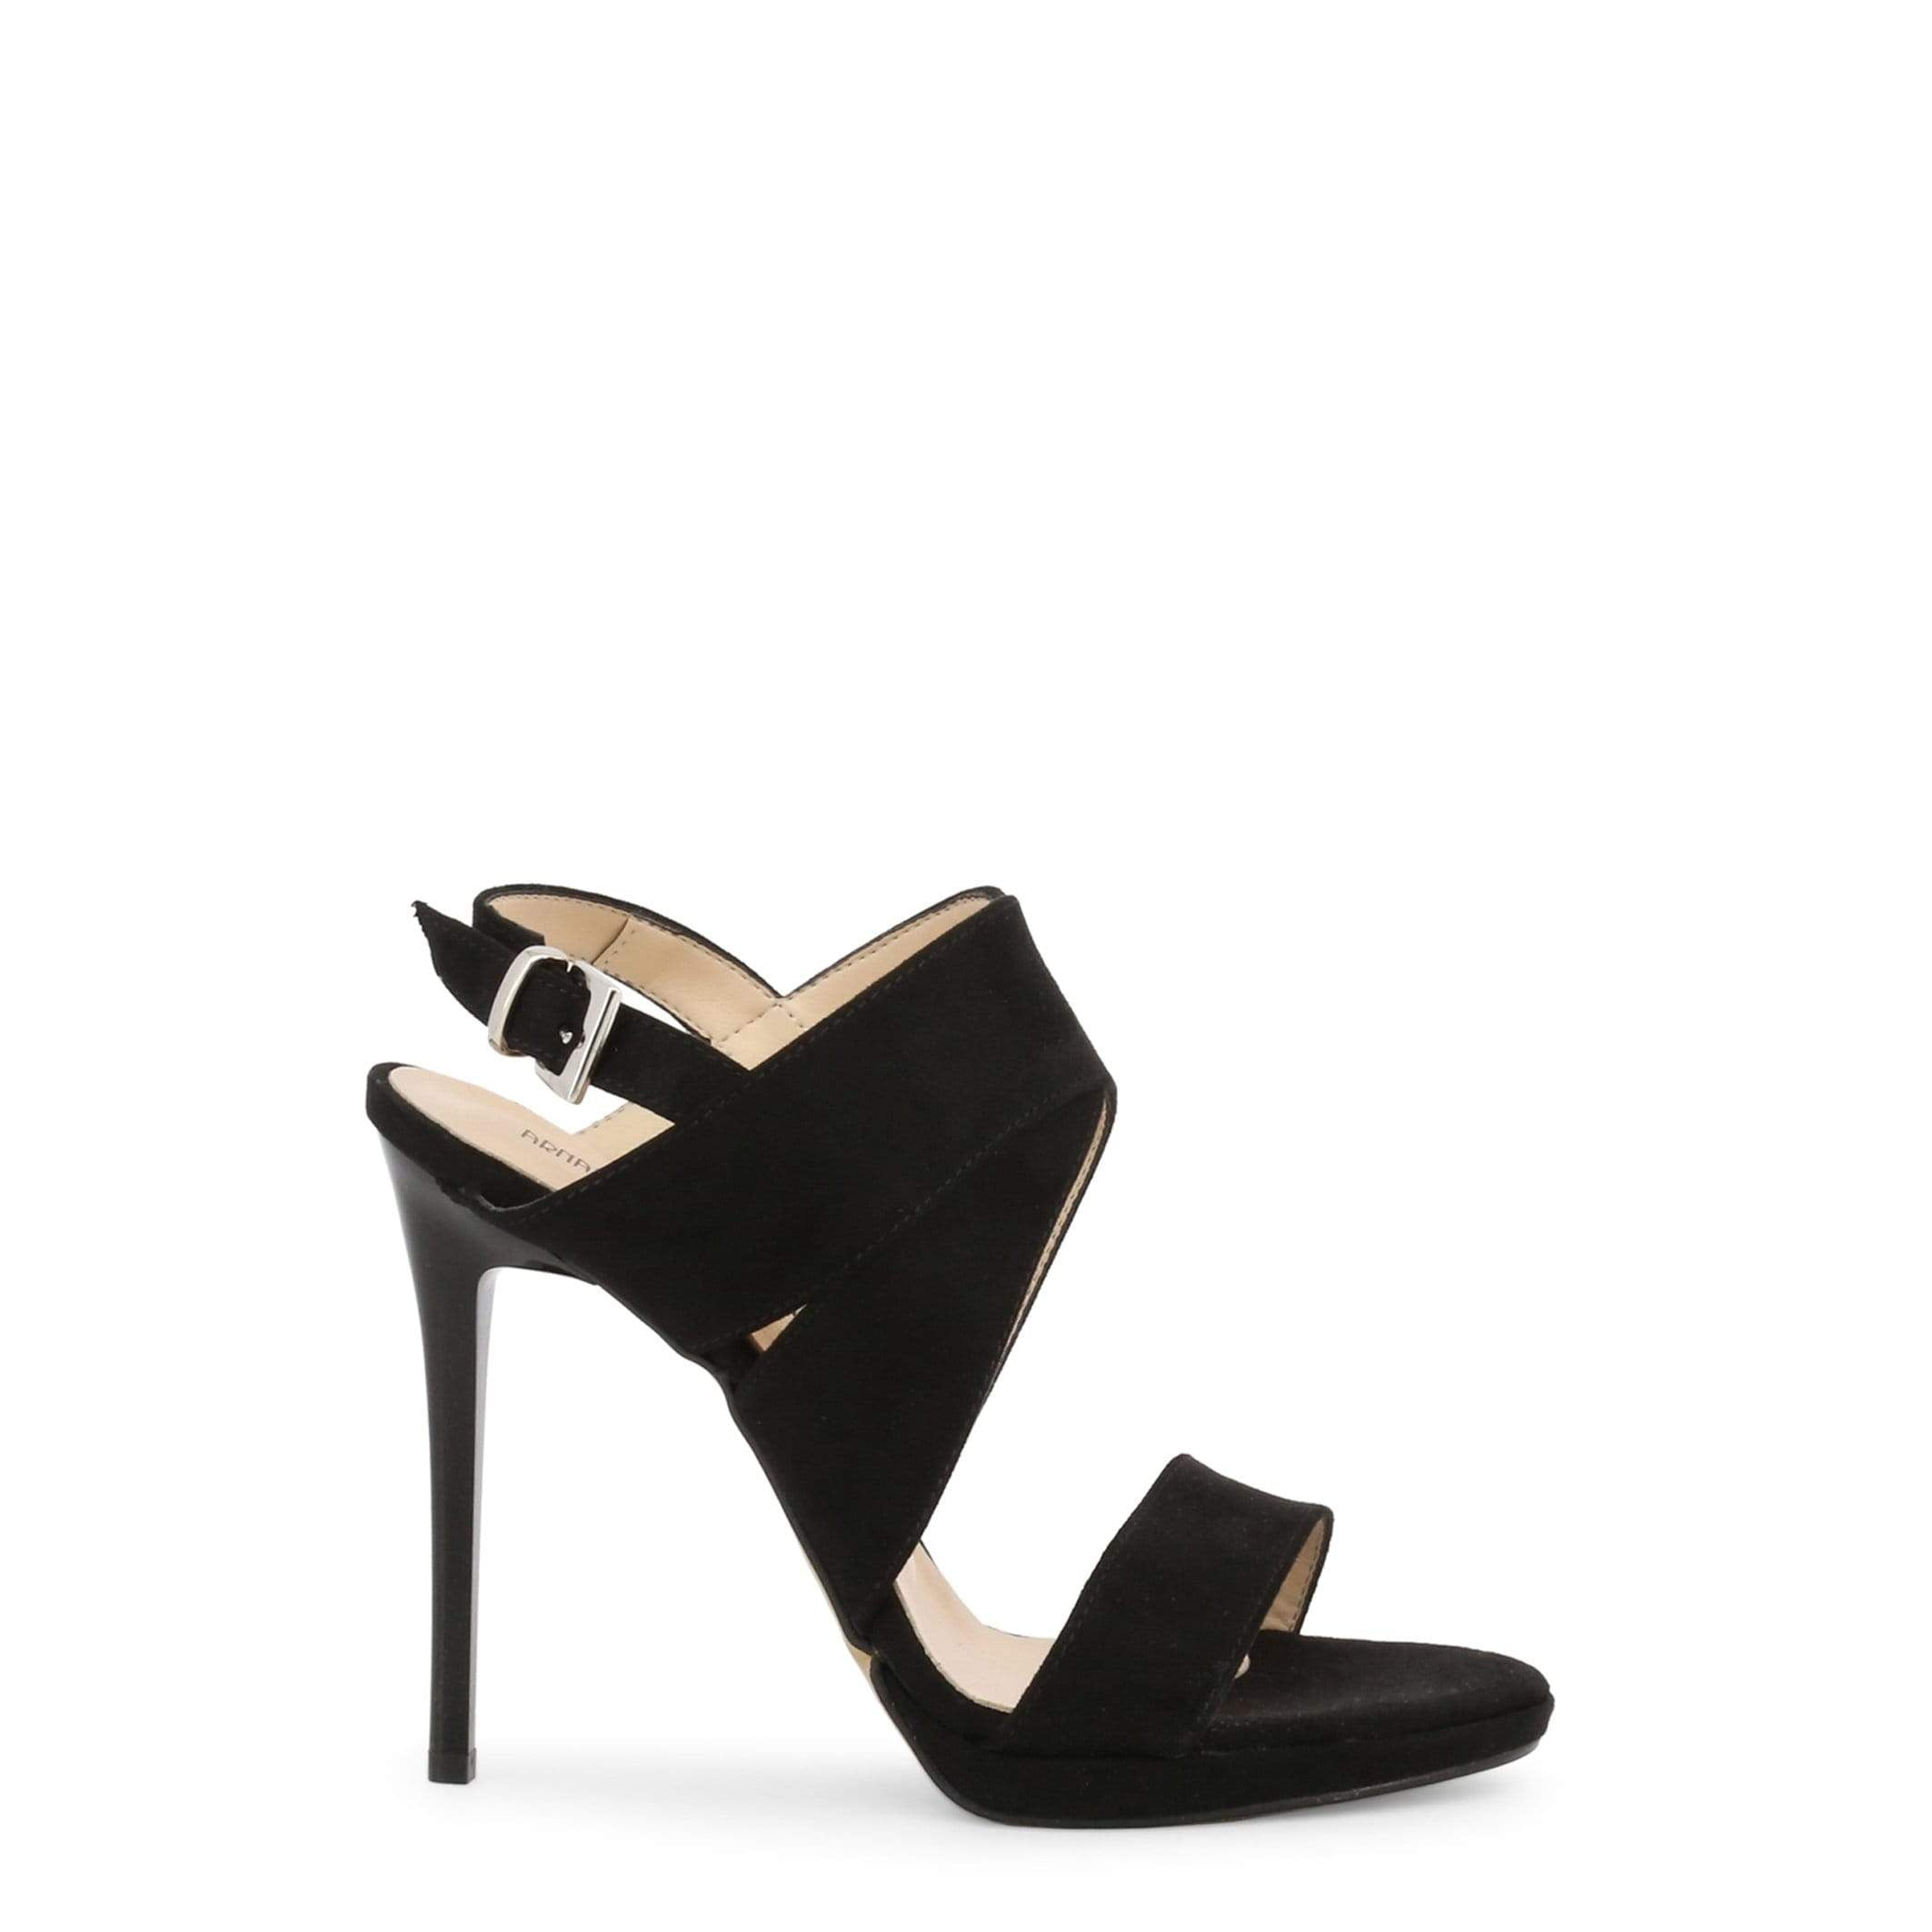 Arnaldo Toscani Shoes Sandals black / EU 36 Arnaldo Toscani - 1218021